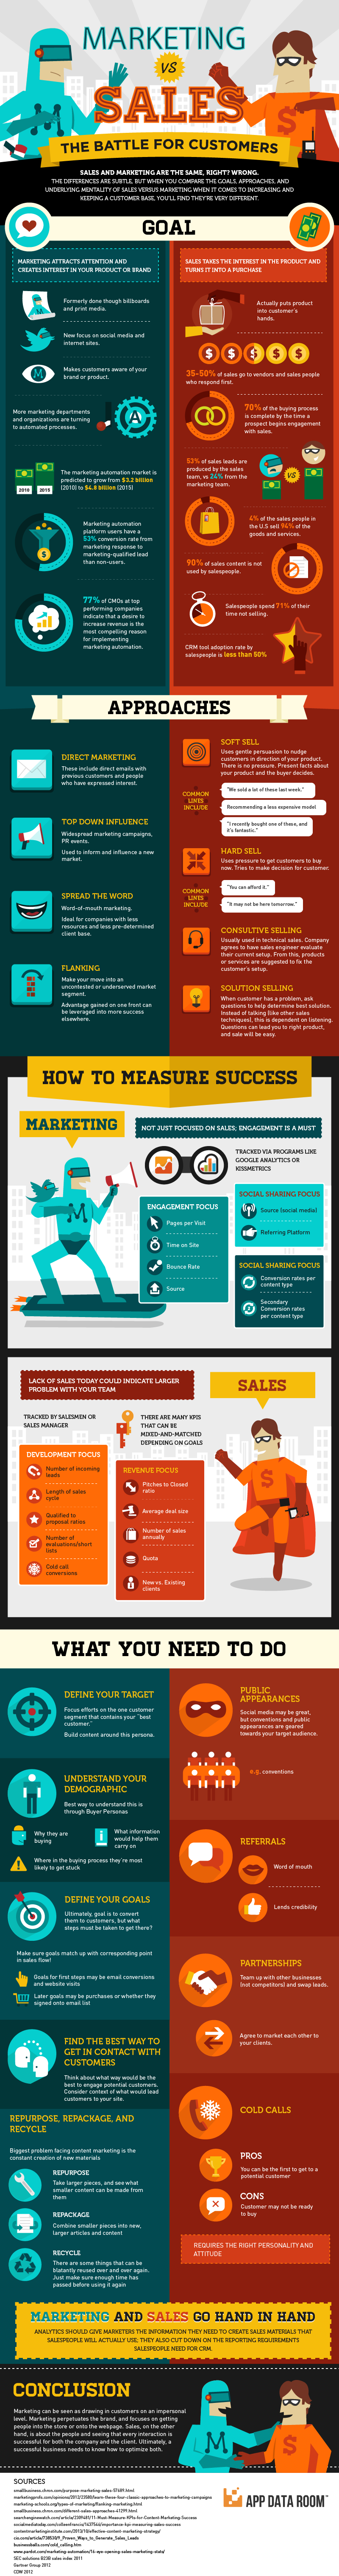 Marketing vs Sales: The Battle for Customers